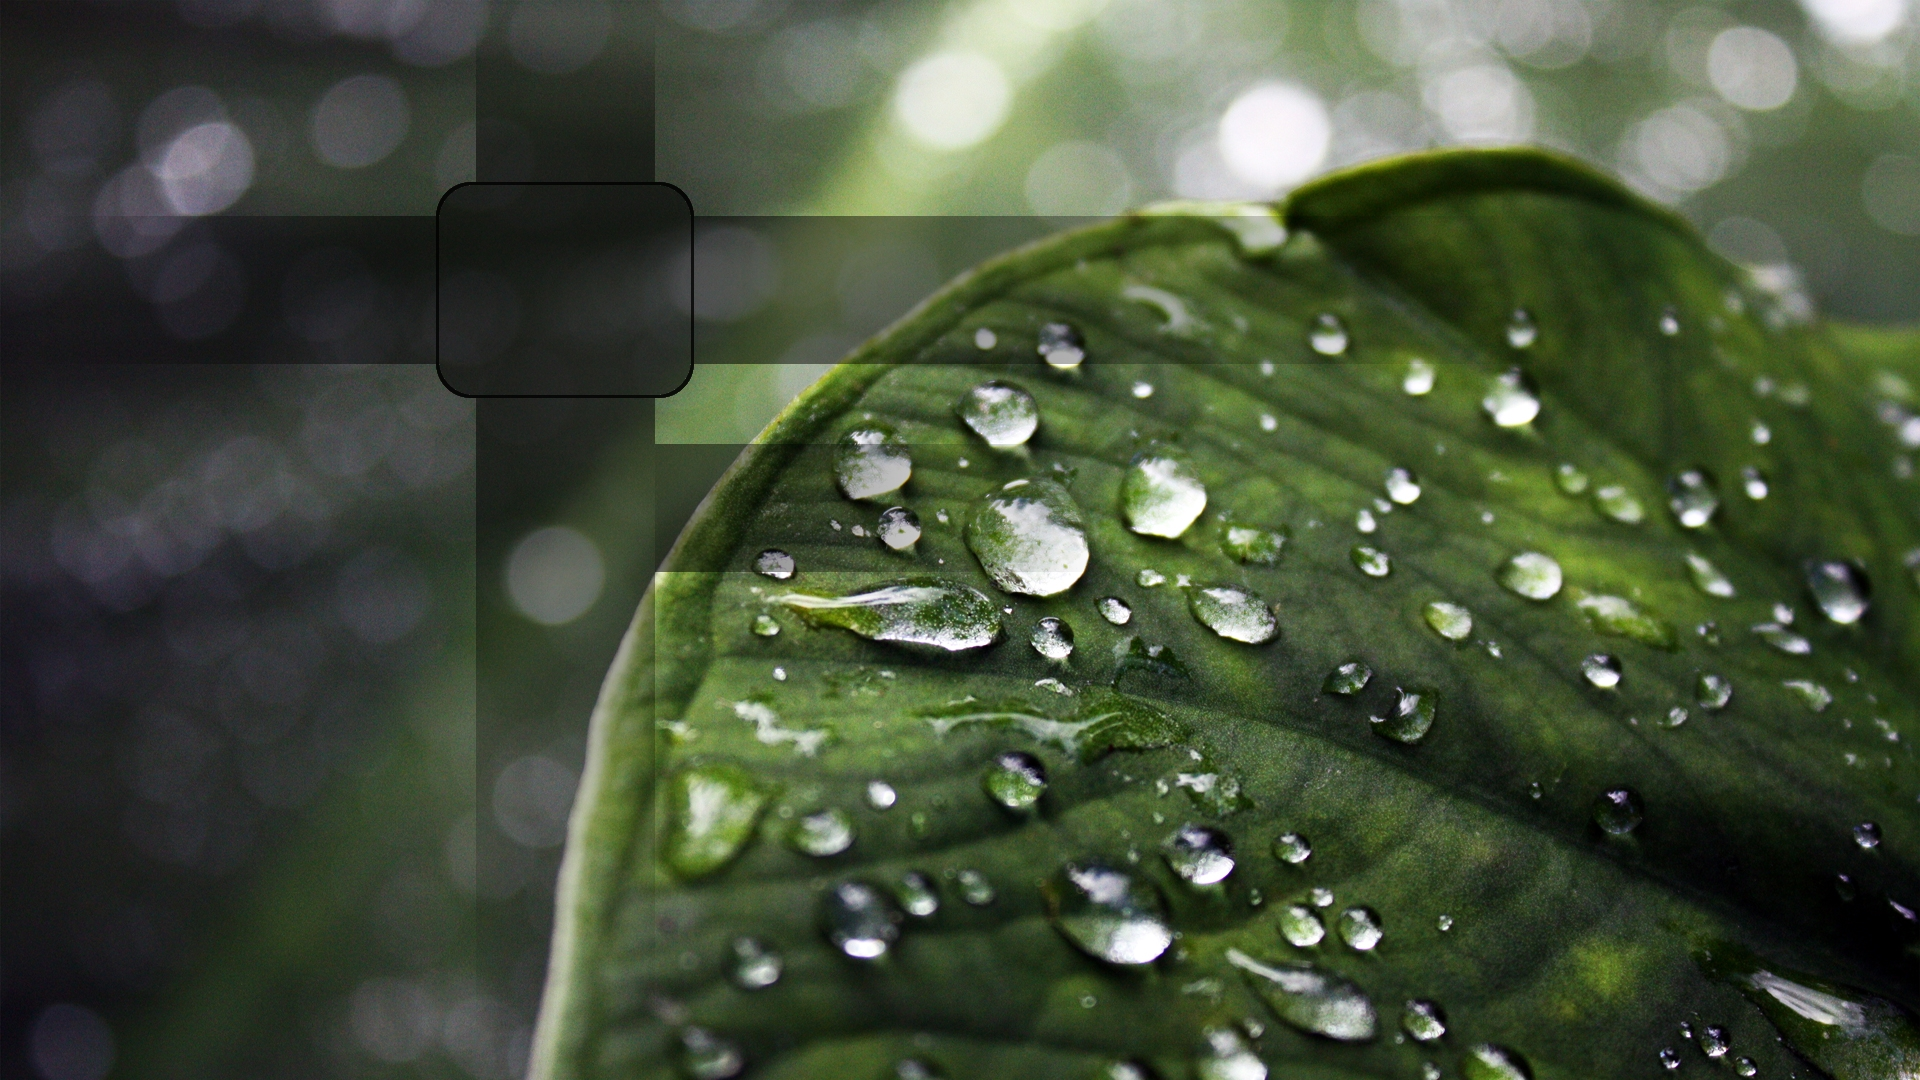 Rain Drops on Leaf Wallpapers